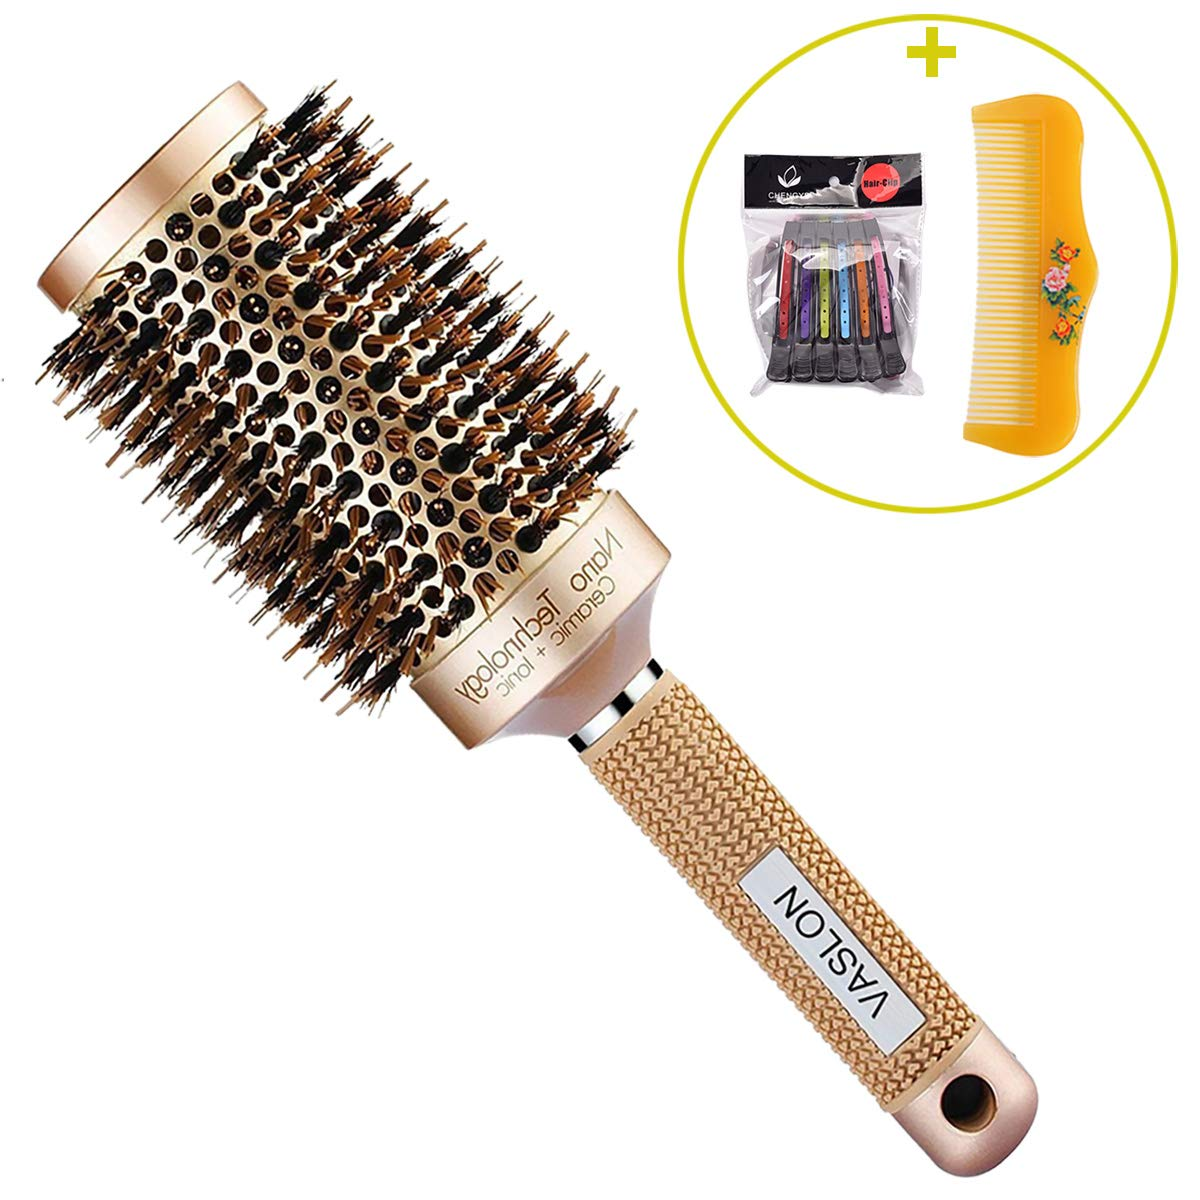 VASLON Professional Salon Round Barrel Hair Brush with Boar Bristle For Blow Drying, Curling & Straightening, Nano Thermal Ceramic & Ionic Brush(2 inch)